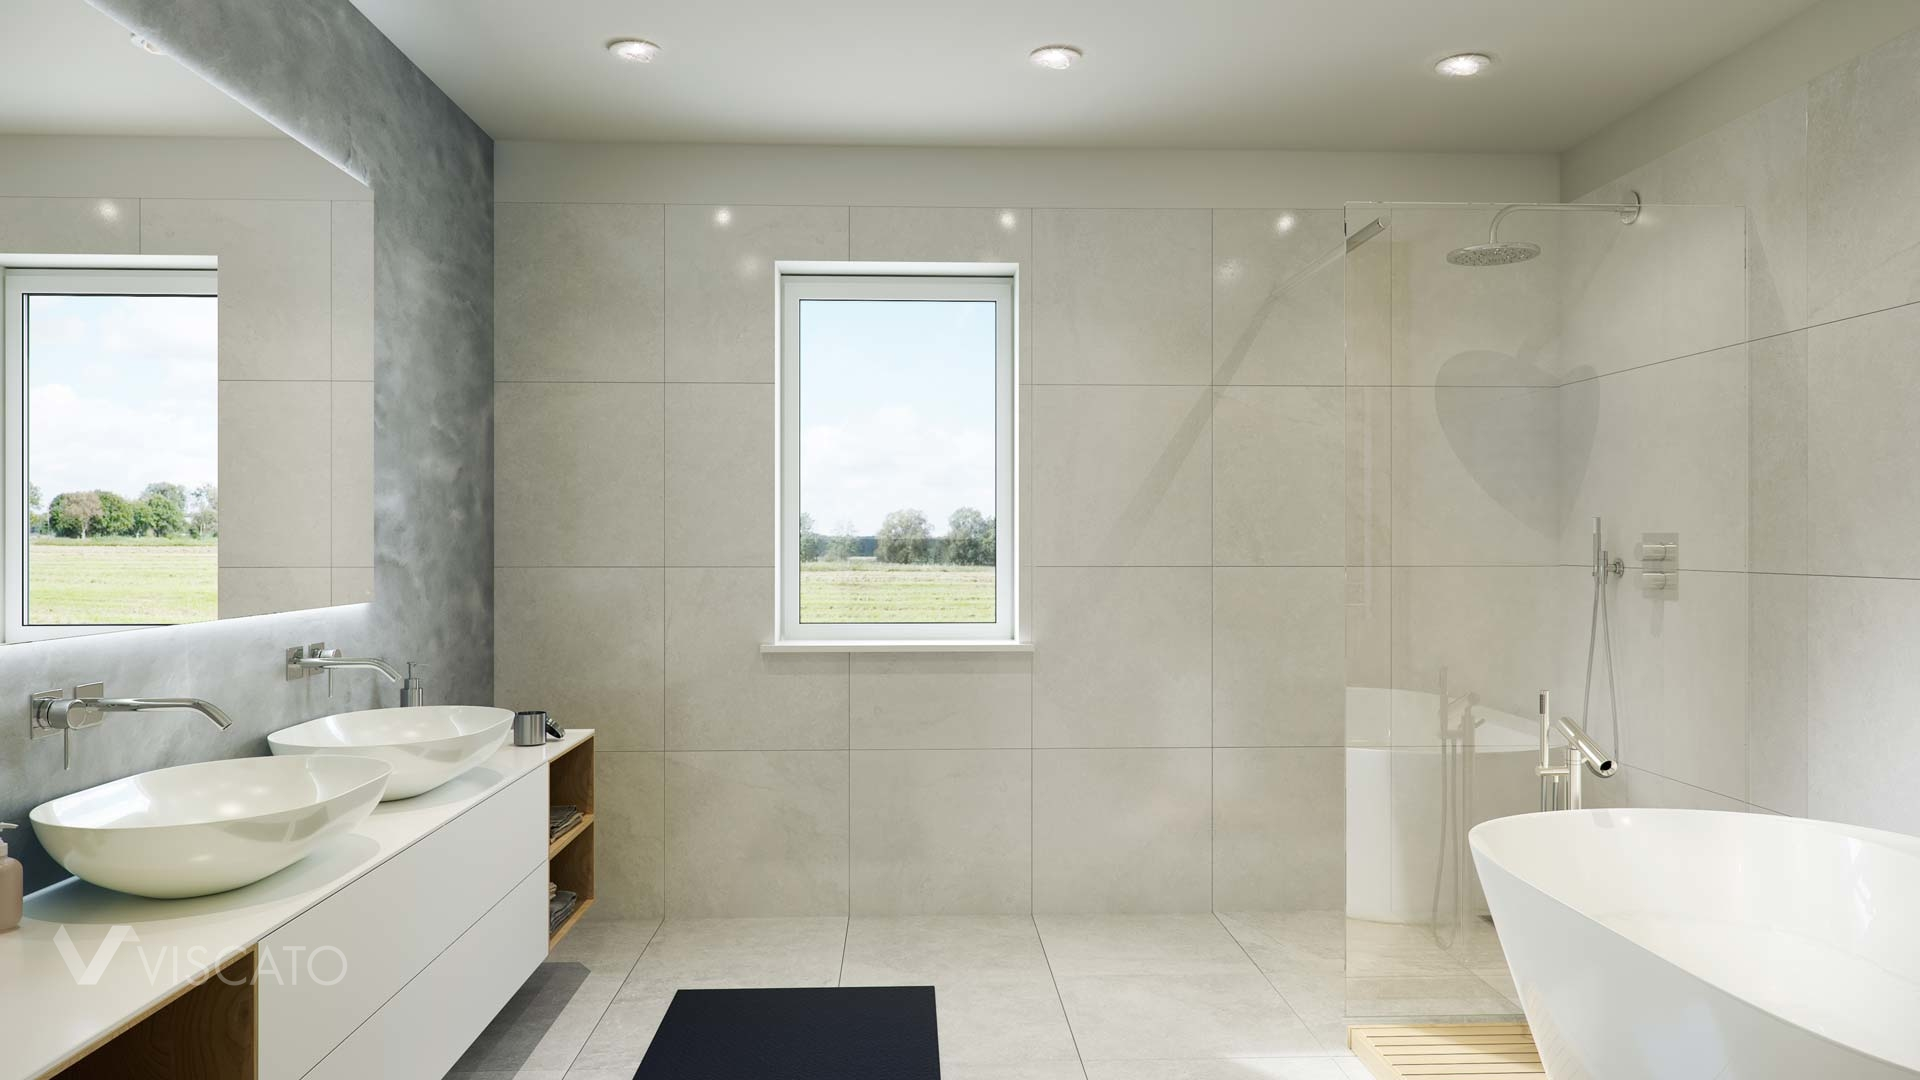 3D interior visualization of a bathroom with a shower and a bathtub, 3ds max